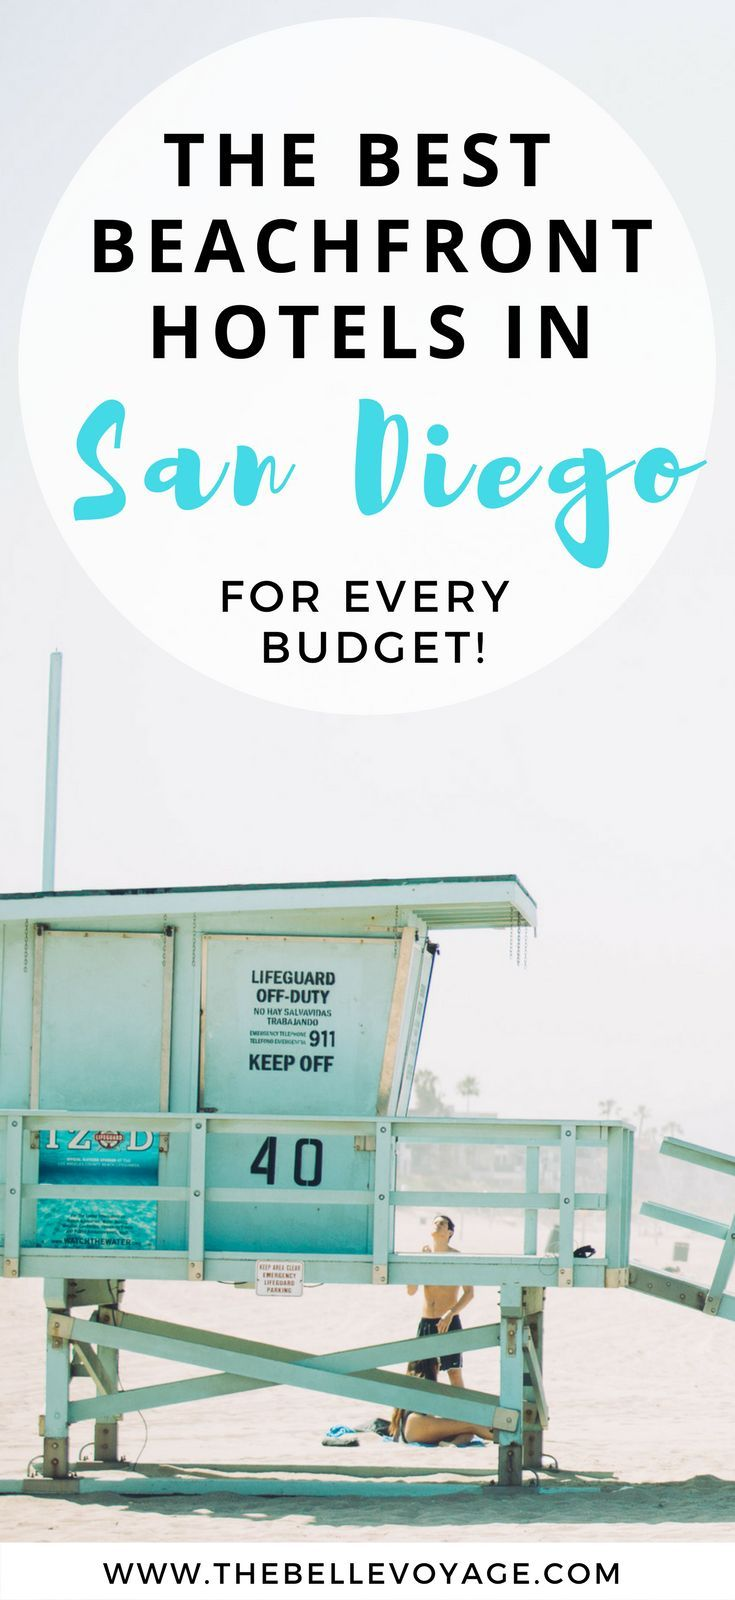 The Best San Diego Beachfront Hotels for Every Budget | San Diego California Hotels | San Diego Vacation | San Diego Attractions | San Diego Travel Guide | Where to Stay in San Diego | San Diego Beaches | Best San Diego Hotels and Places to Stay